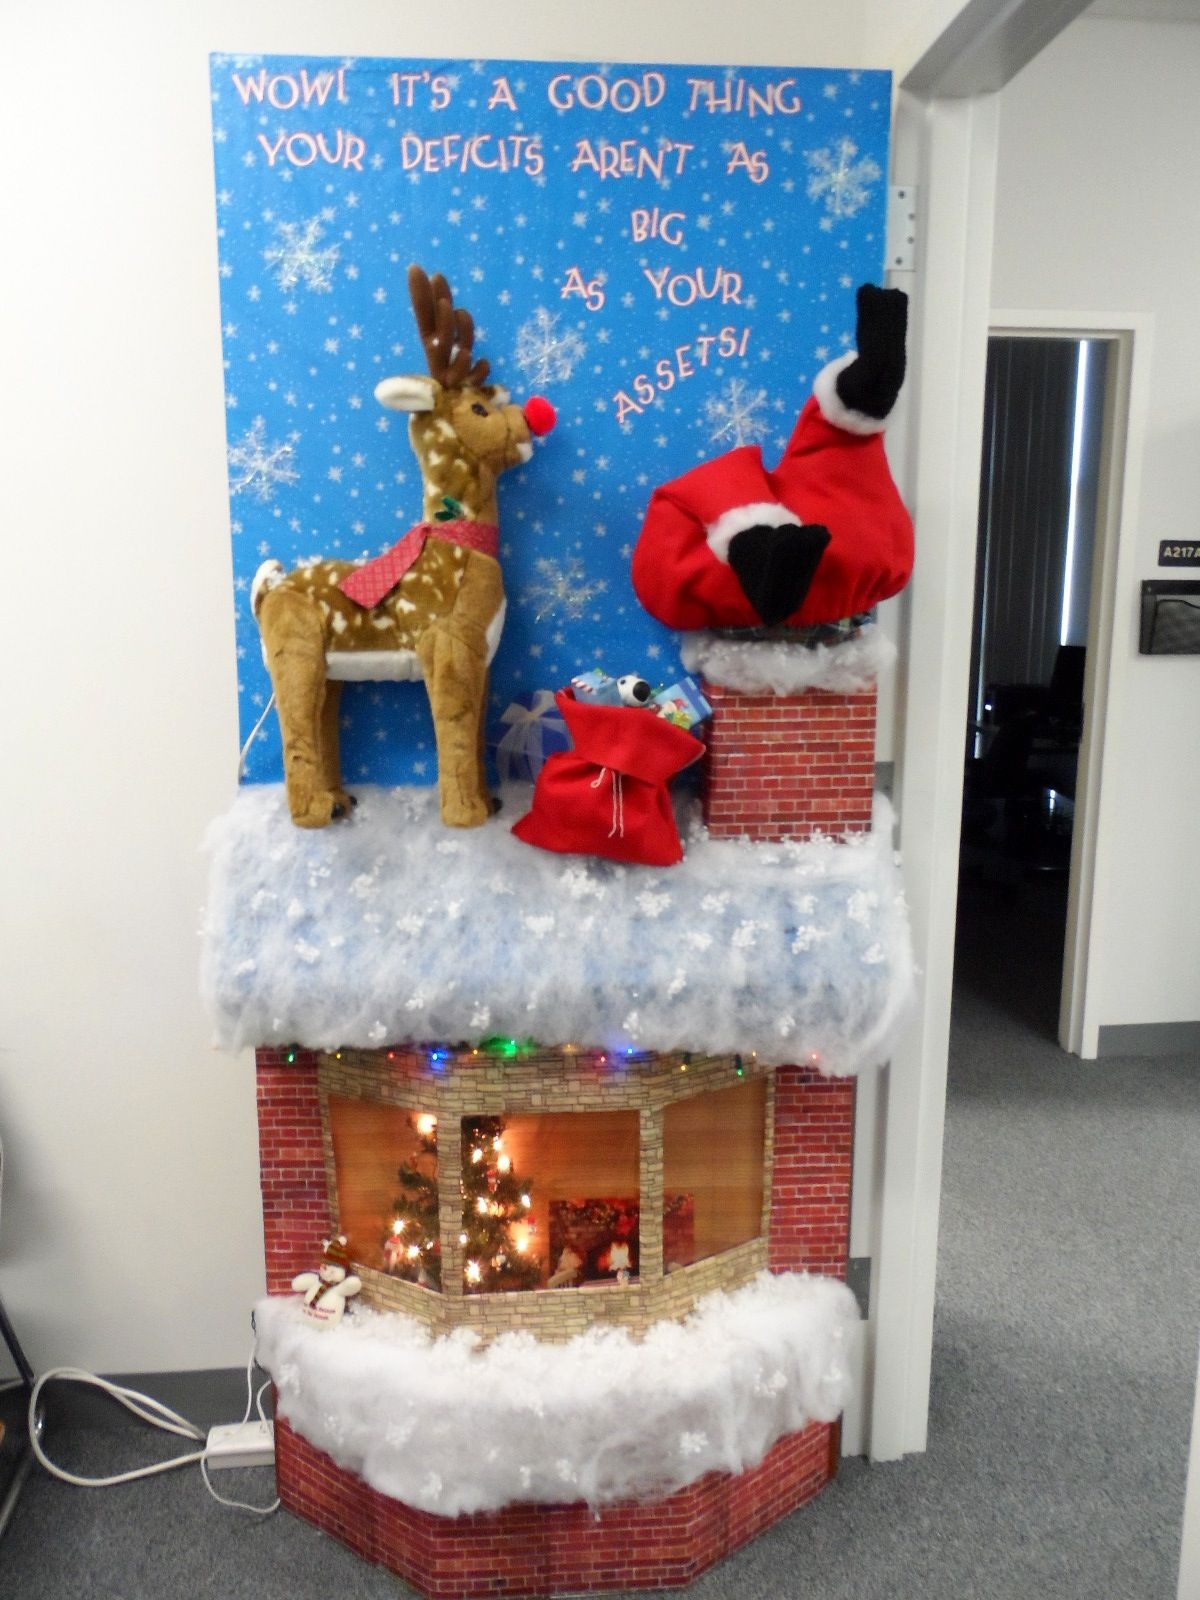 Christmas Door Decorating Contest Ideas For School : Door decorating contest for christmas office